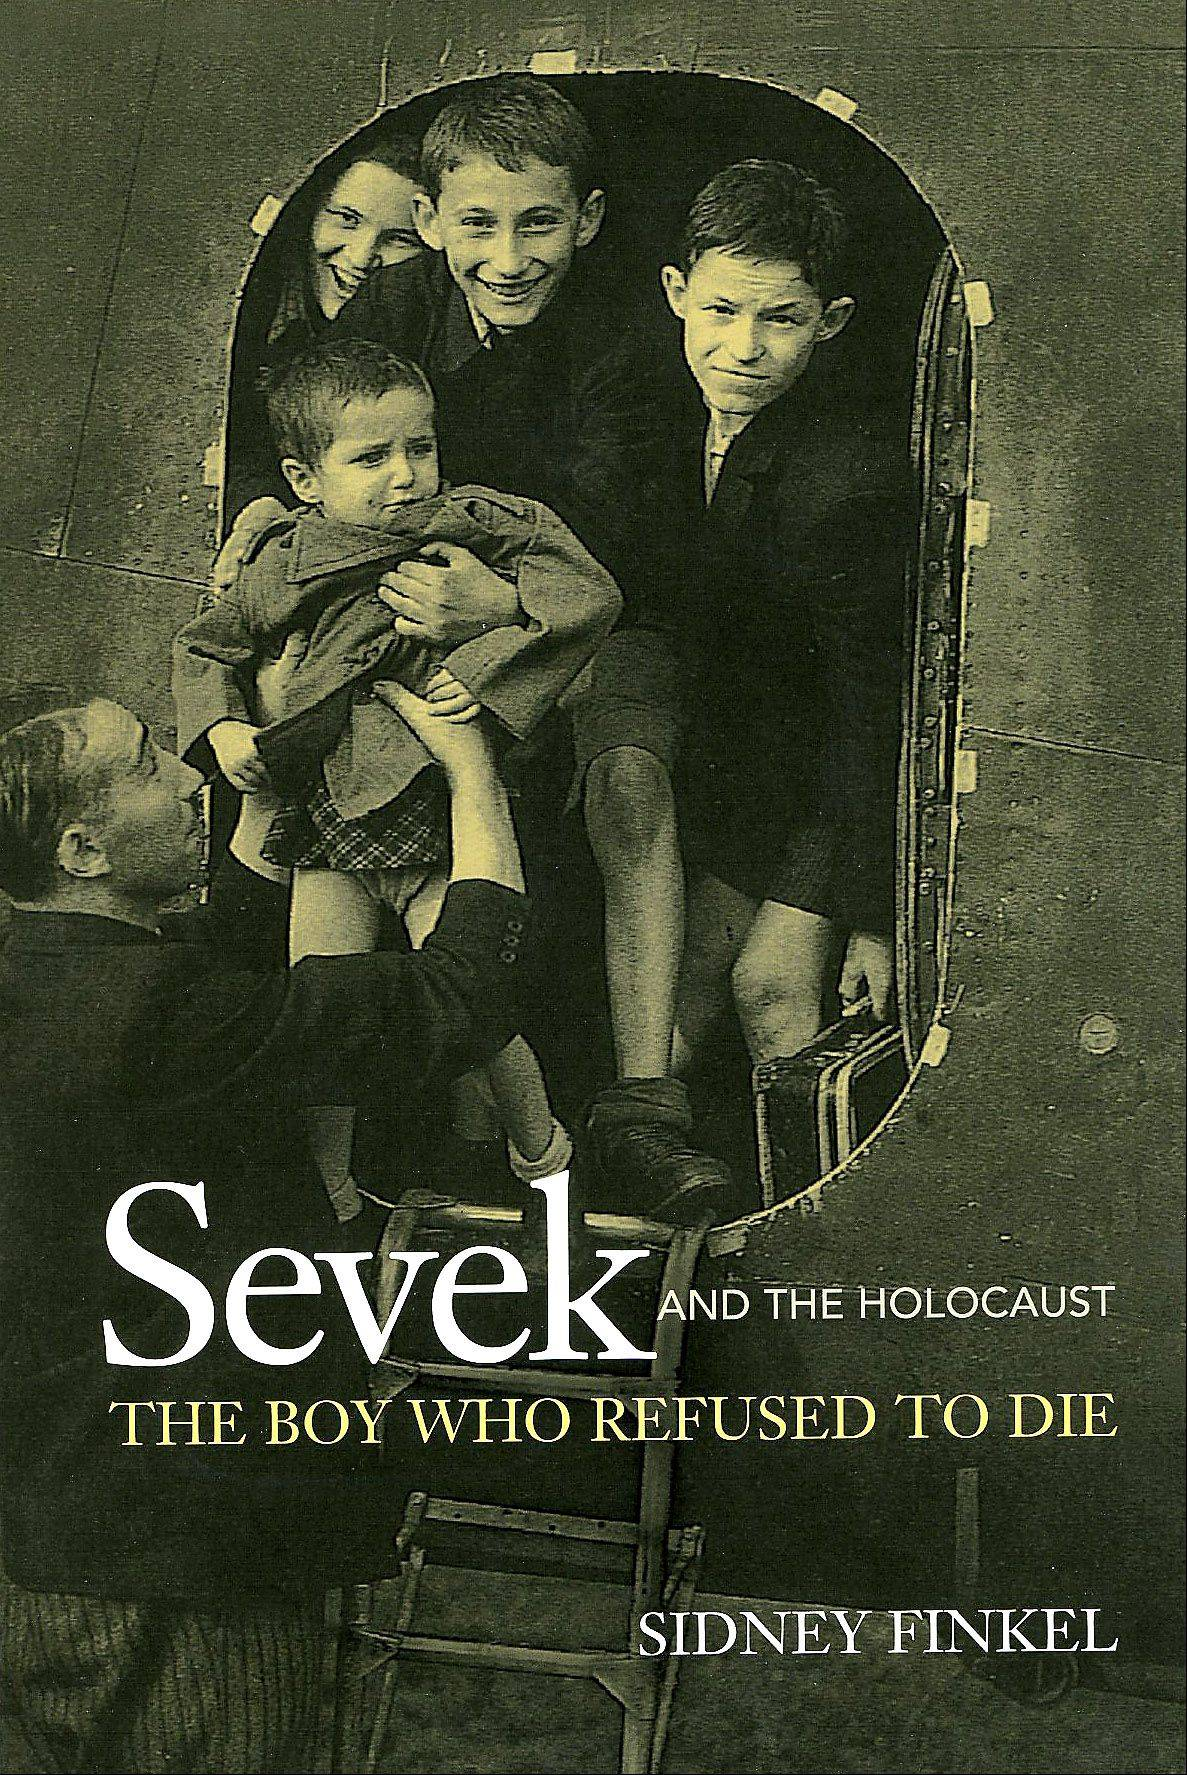 """Sevek: The boy who refused to die"" by Sidney Finkel. Finekl is pictured in the top center as he was arriving in England after surviving a concentration camp. It is the first childhood photo Finkel has since he was only 8 when World War II broke out and everything else was lost."